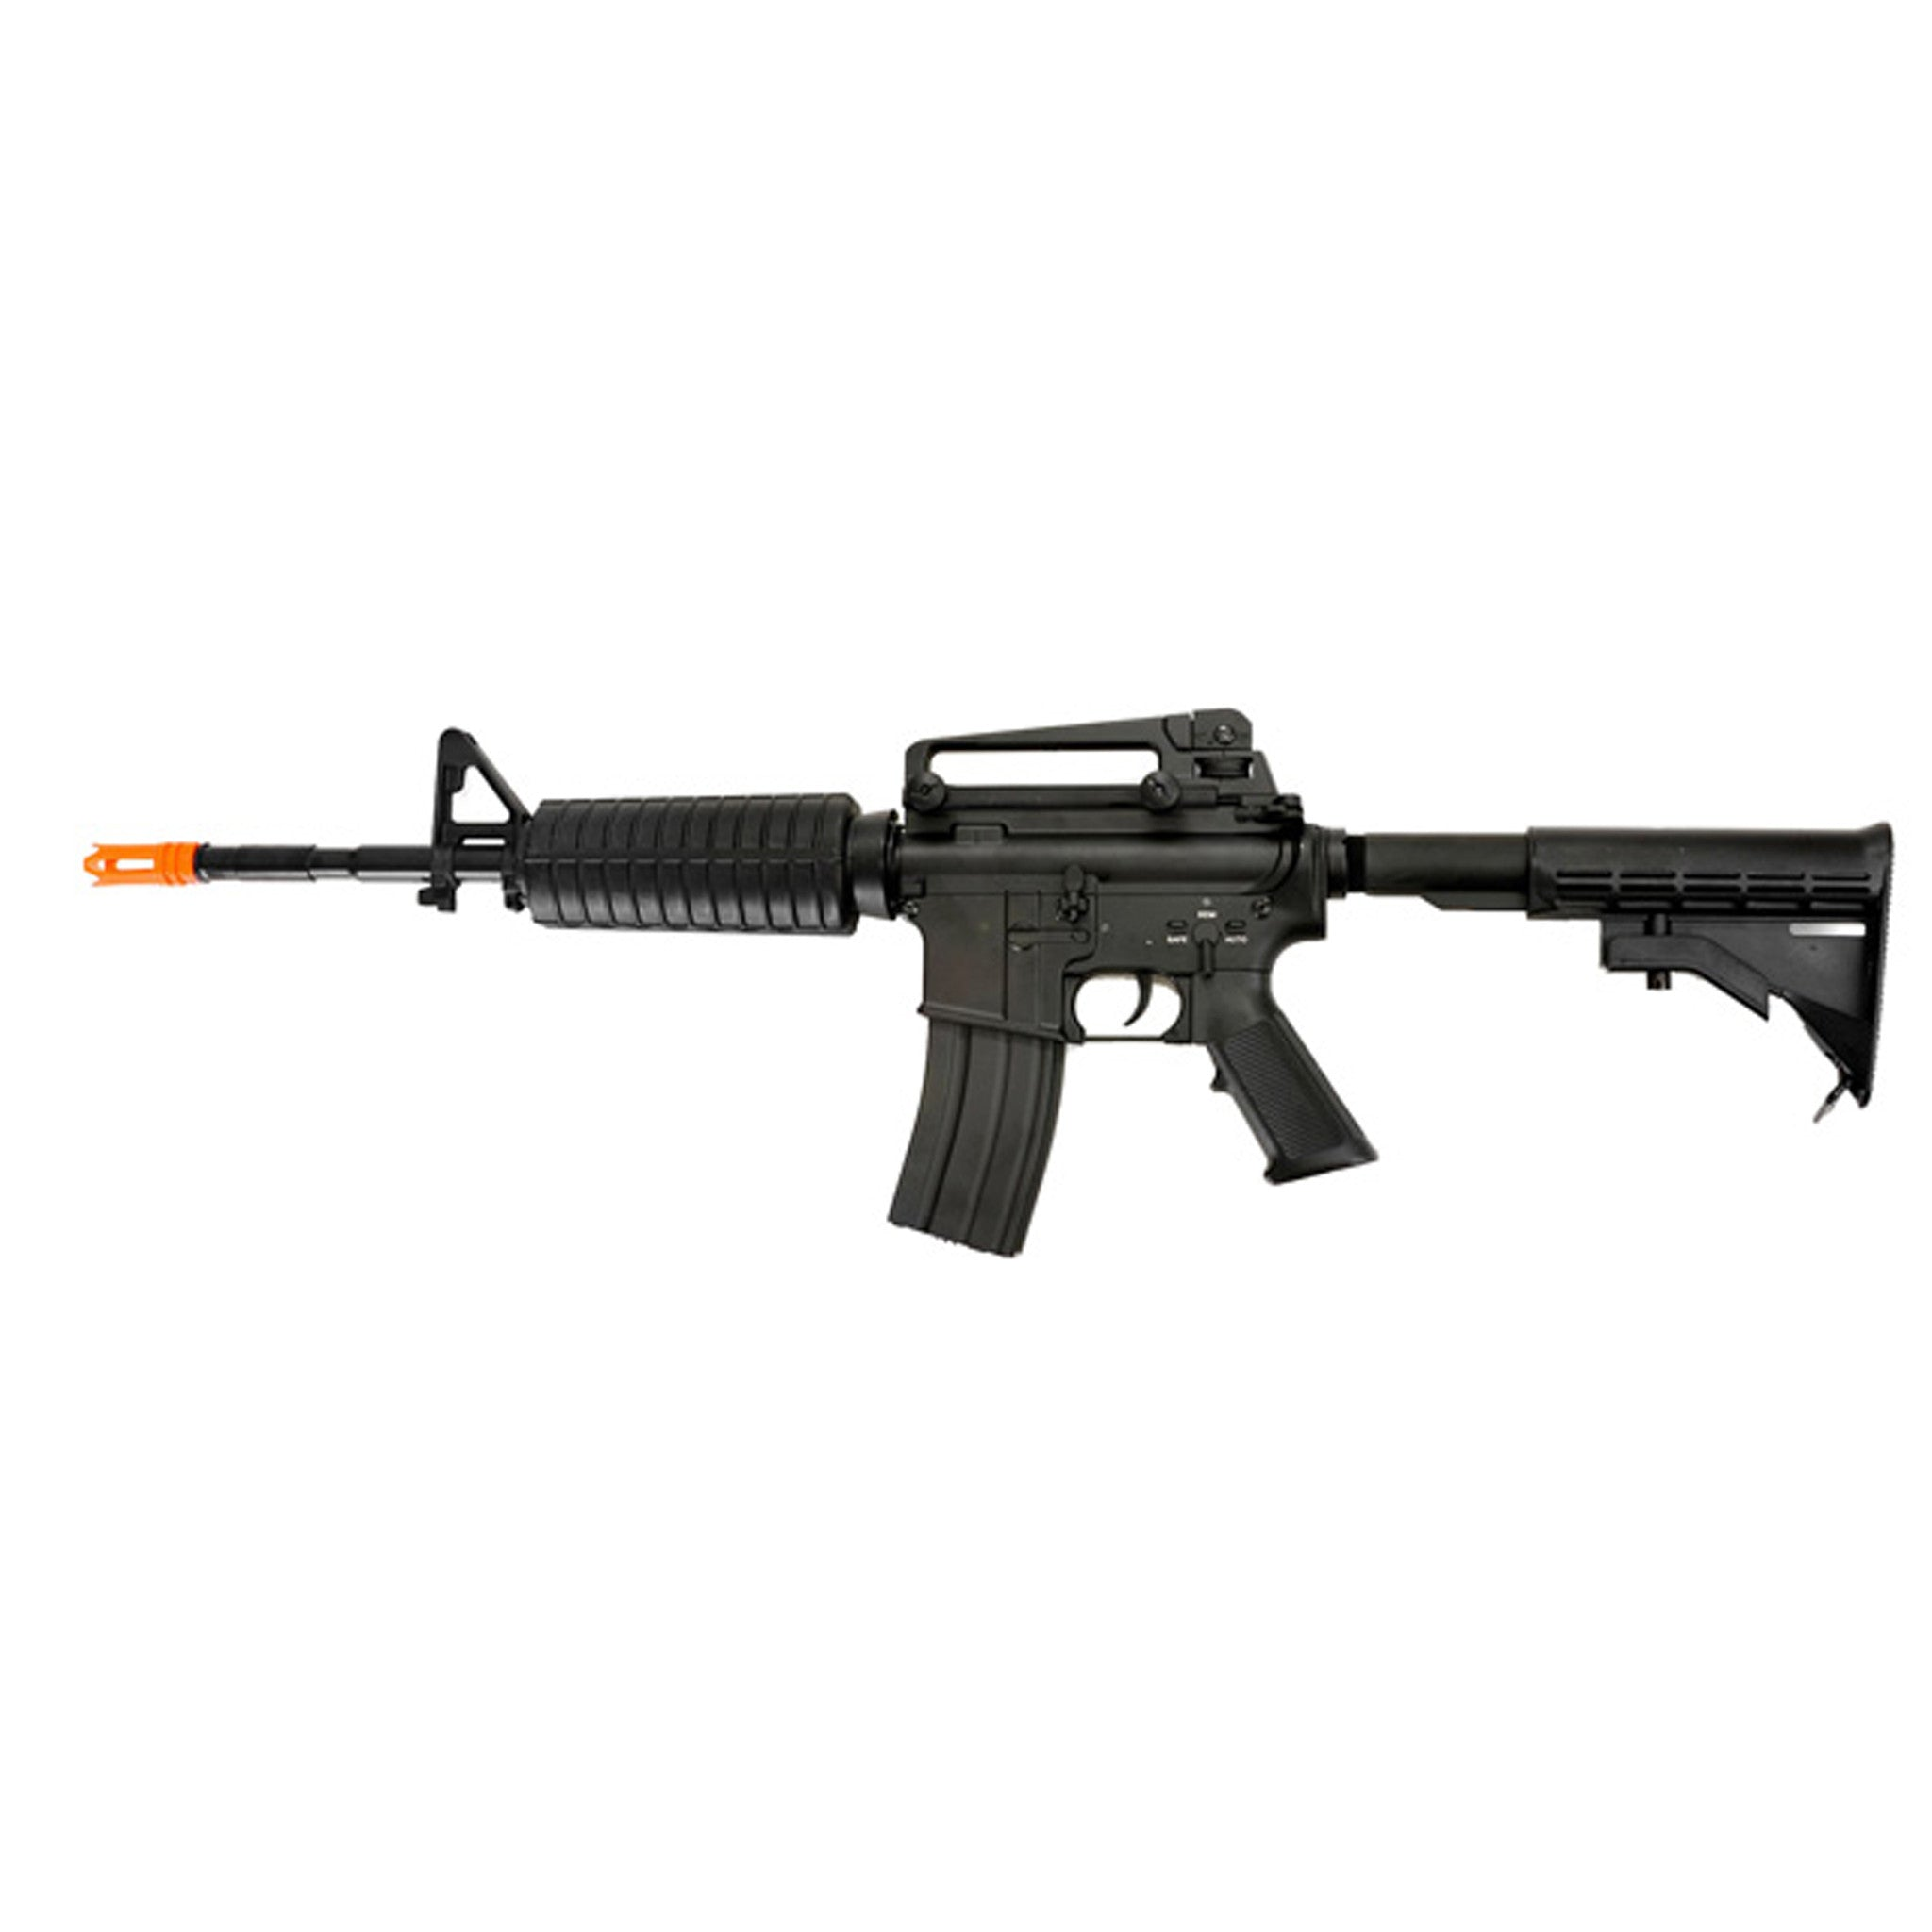 DBoys M4-A1 Full Metal - -Electric Automatic -Firing Modes: Semi-automatic and Full-automatic -Muzzle Velocity: 380-400 FPS -Magazine: 300-round high capacity (gear wind-up) -Gearbox: Full metal -Barrel: Full metal -Hop-up: Adjustable -Receiver: Full metal